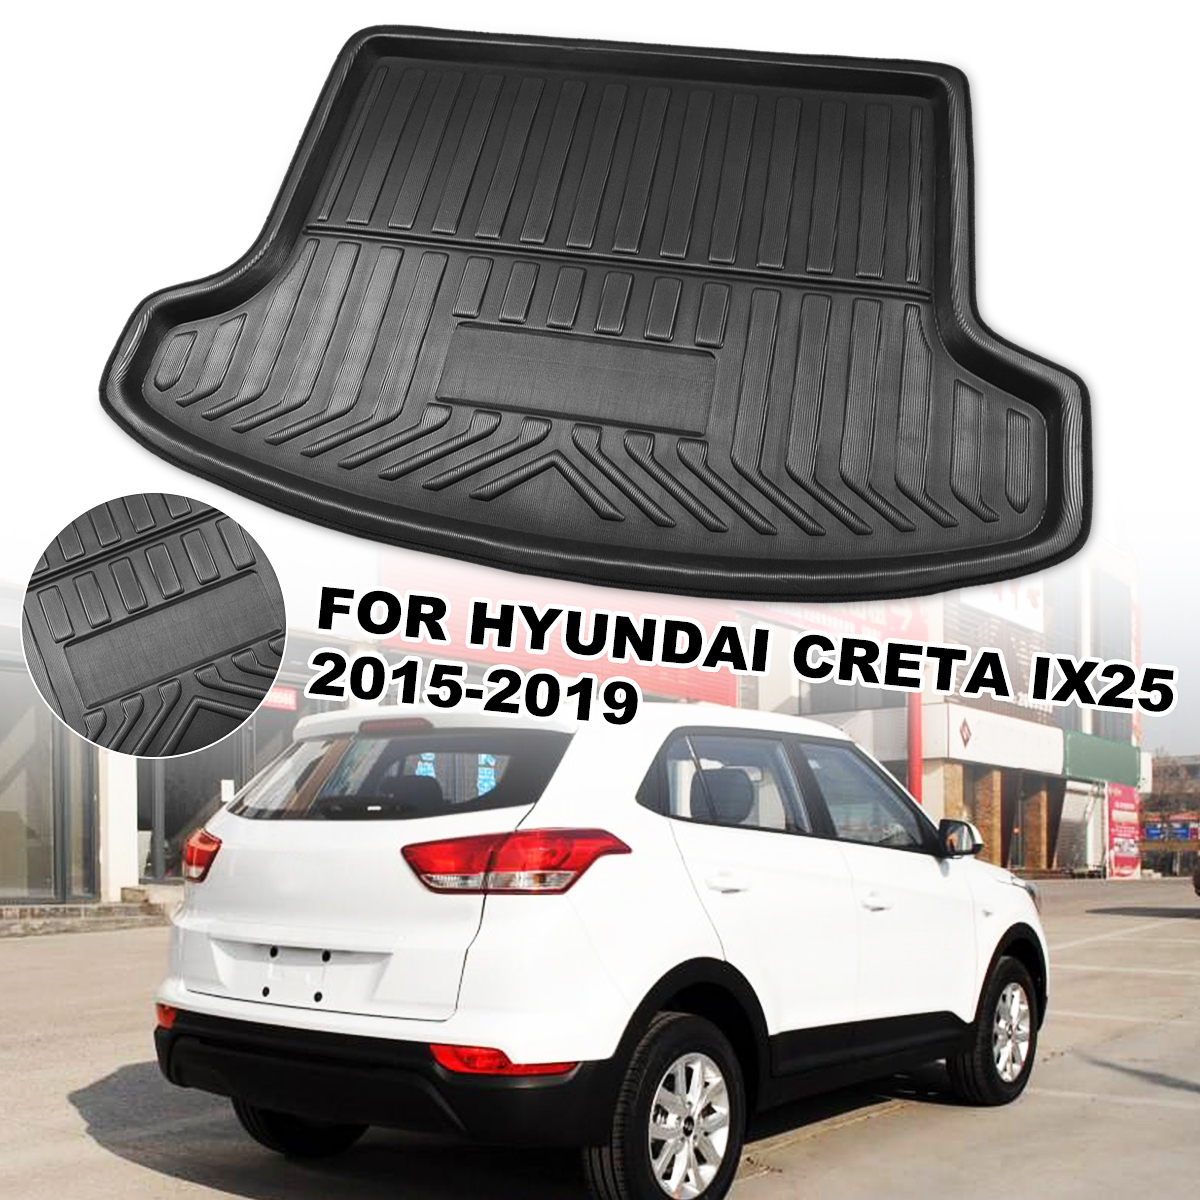 Car Cargo Liner Boot Tray Rear Trunk Cover Matt Mat Floor Carpet Kick Pad For Hyundai Creta Ix25 2015 2016 2017 2018 2019